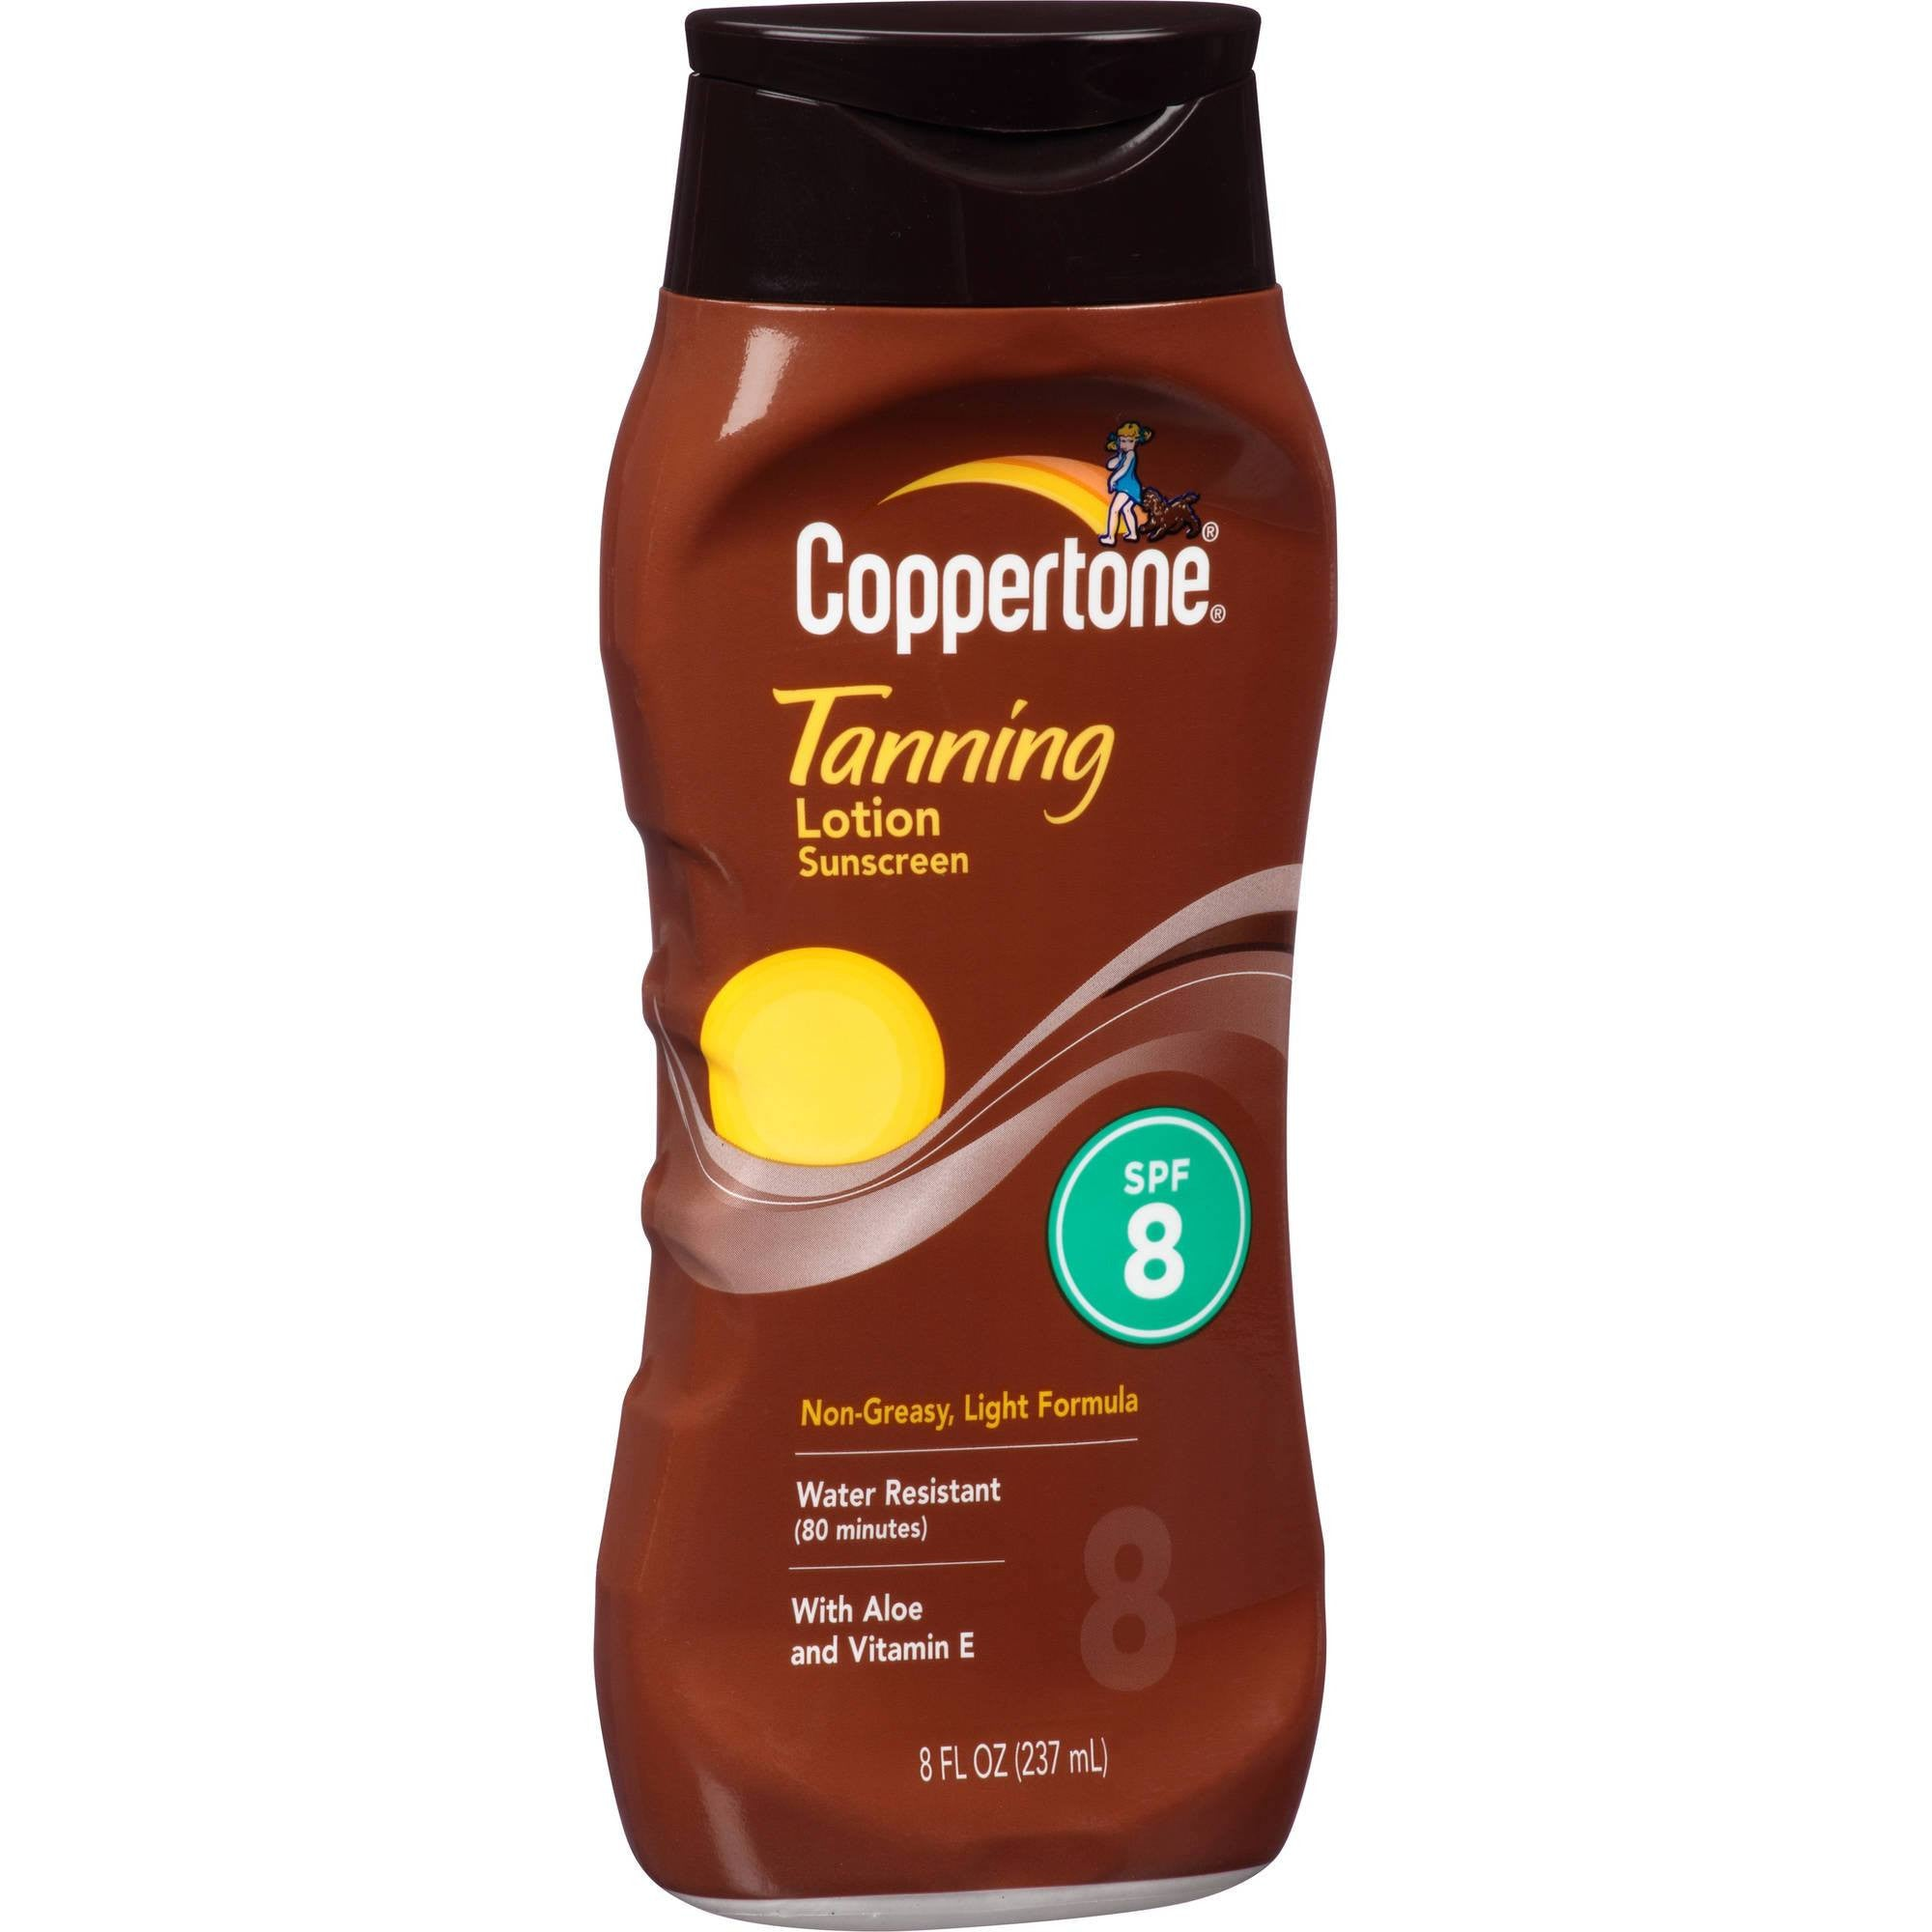 Buy Coppertone Tanning Sunscreen Lotion 8 SPF by Schering Plough wholesale bulk | Sunscreen